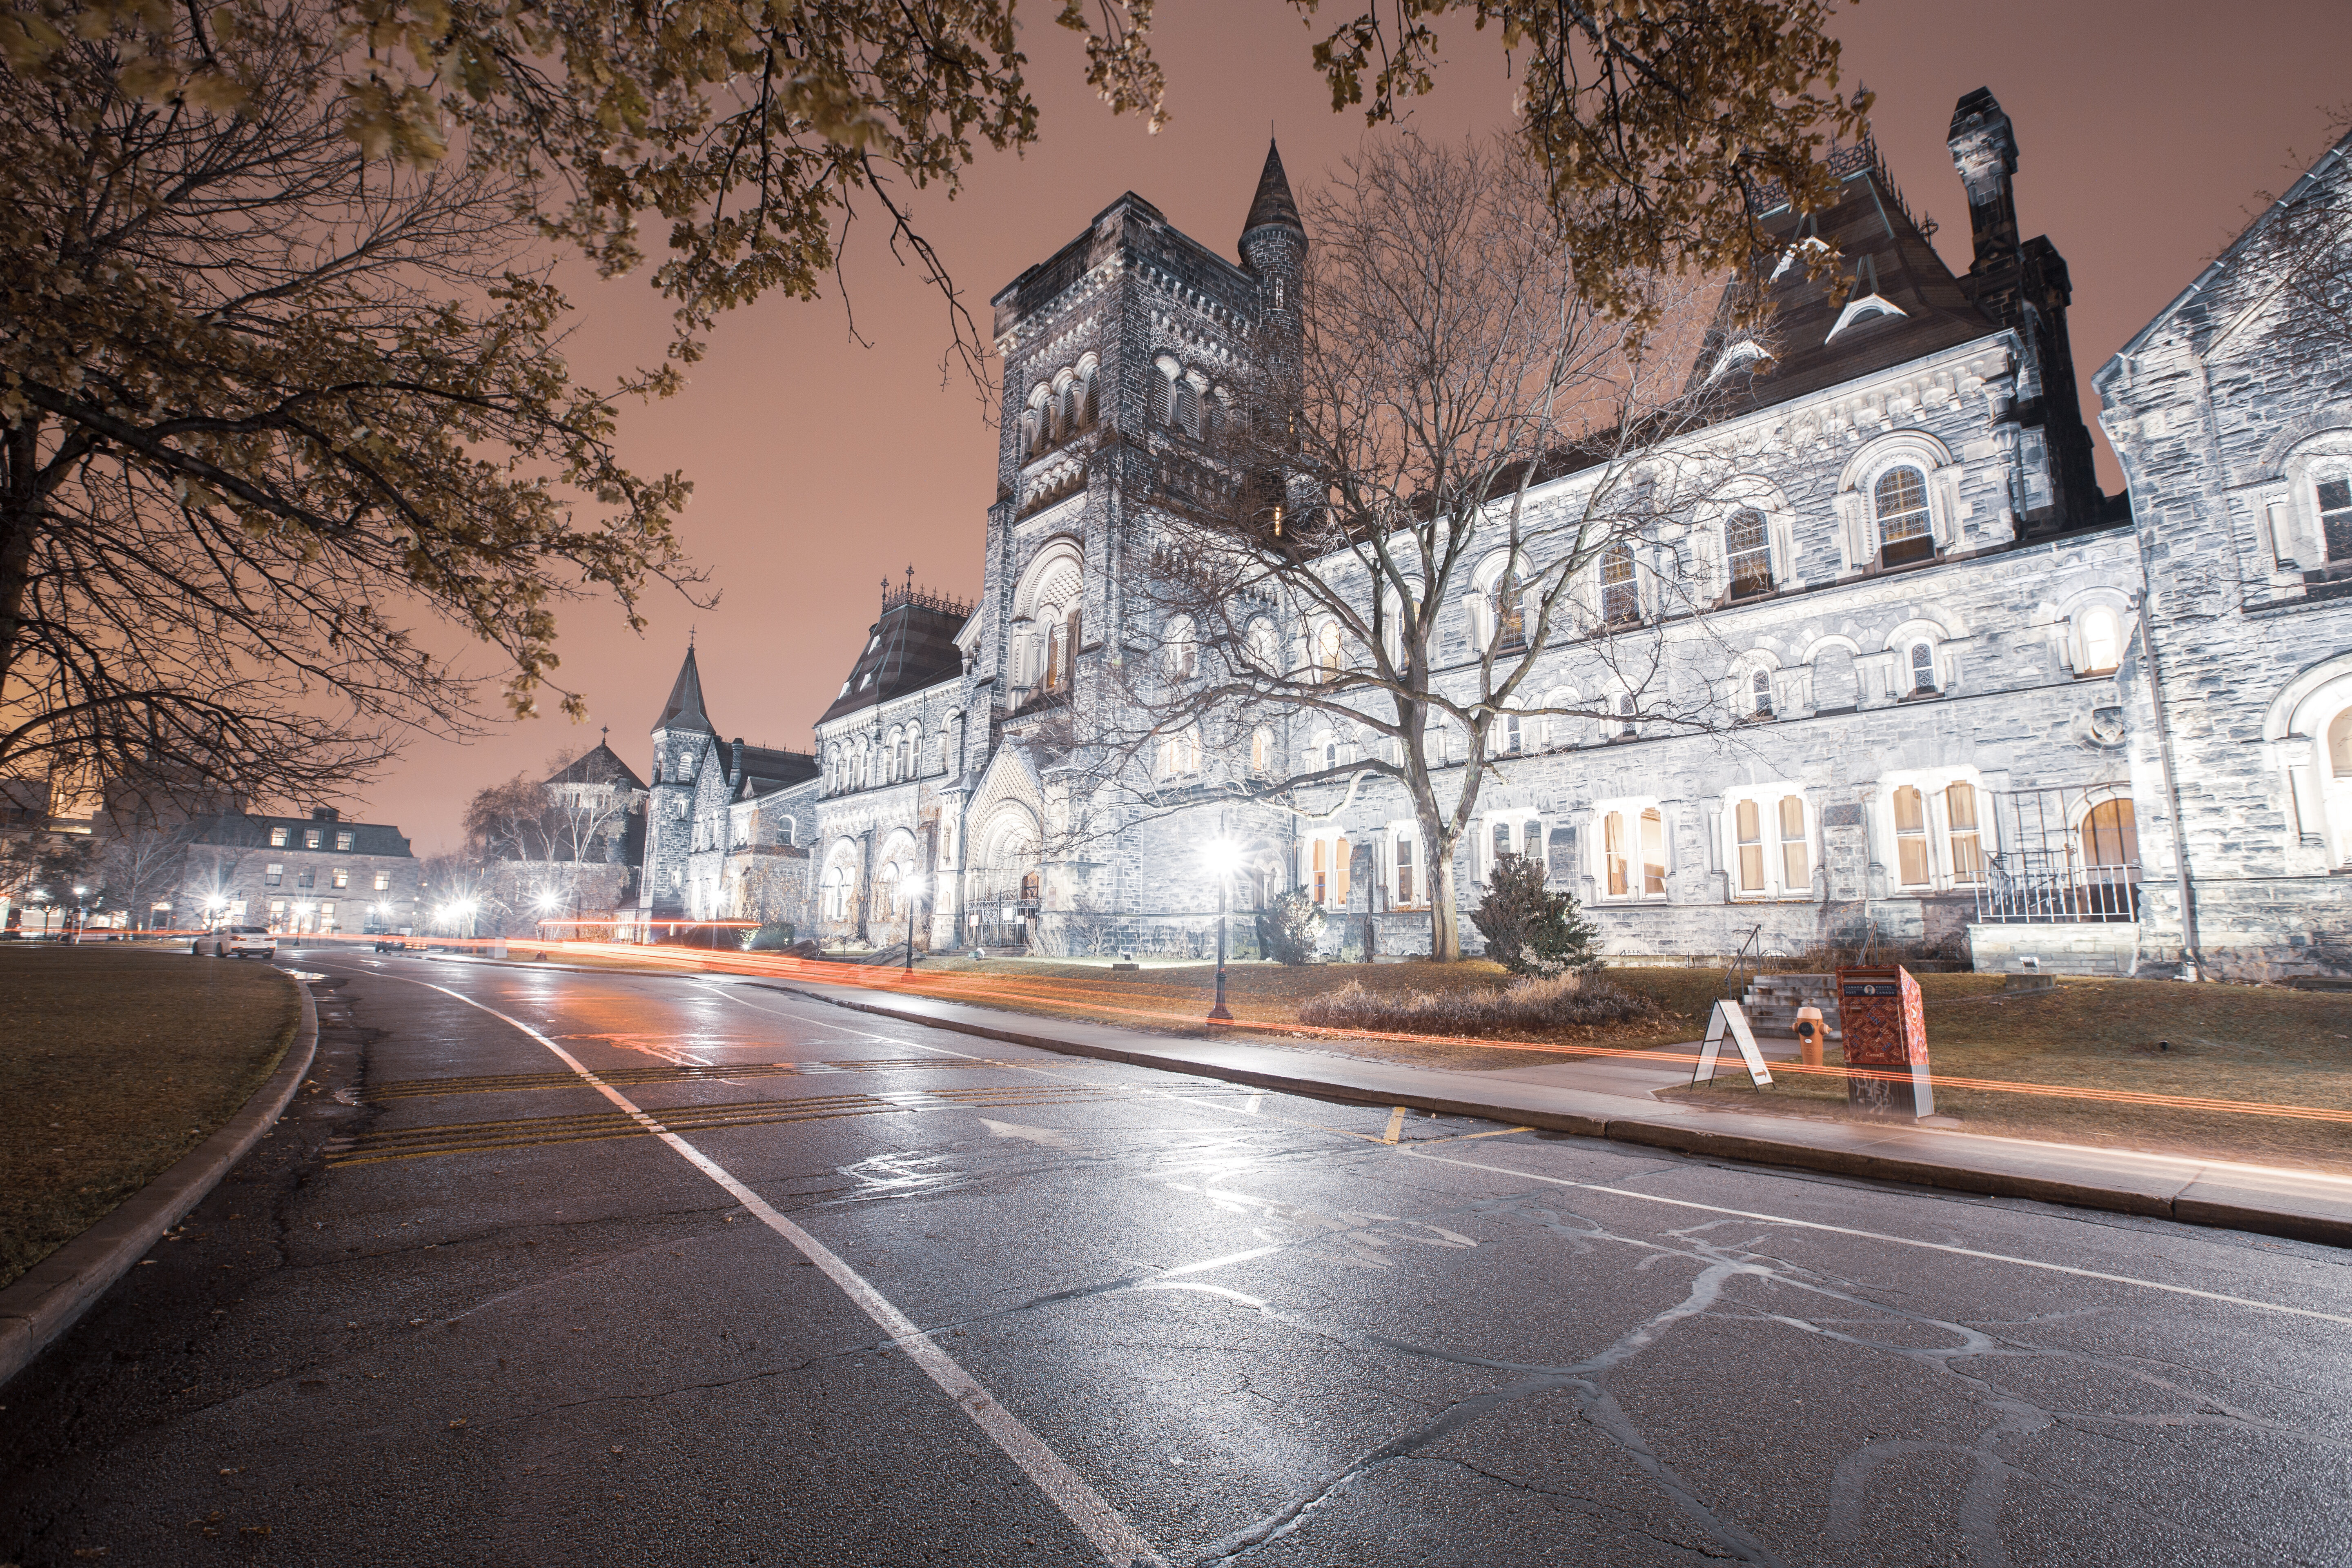 The St. George Campus of the top tier University of Toronto. Canada has a much more streamlined approach to college admission